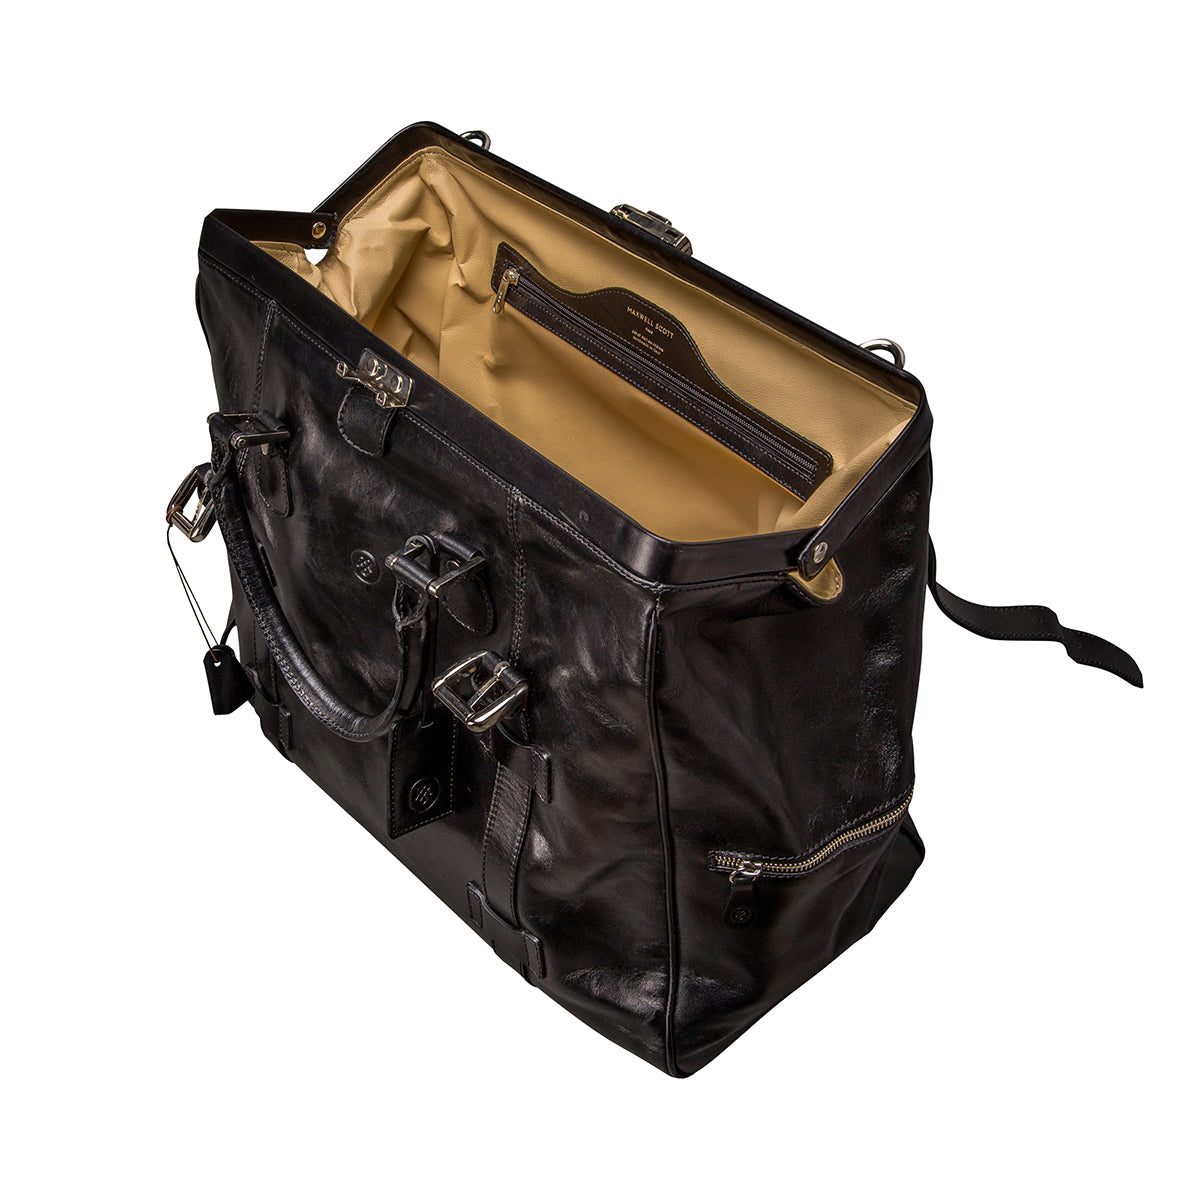 Image 5 of the 'Gassano L' Black Veg-Tanned Leather Holdall